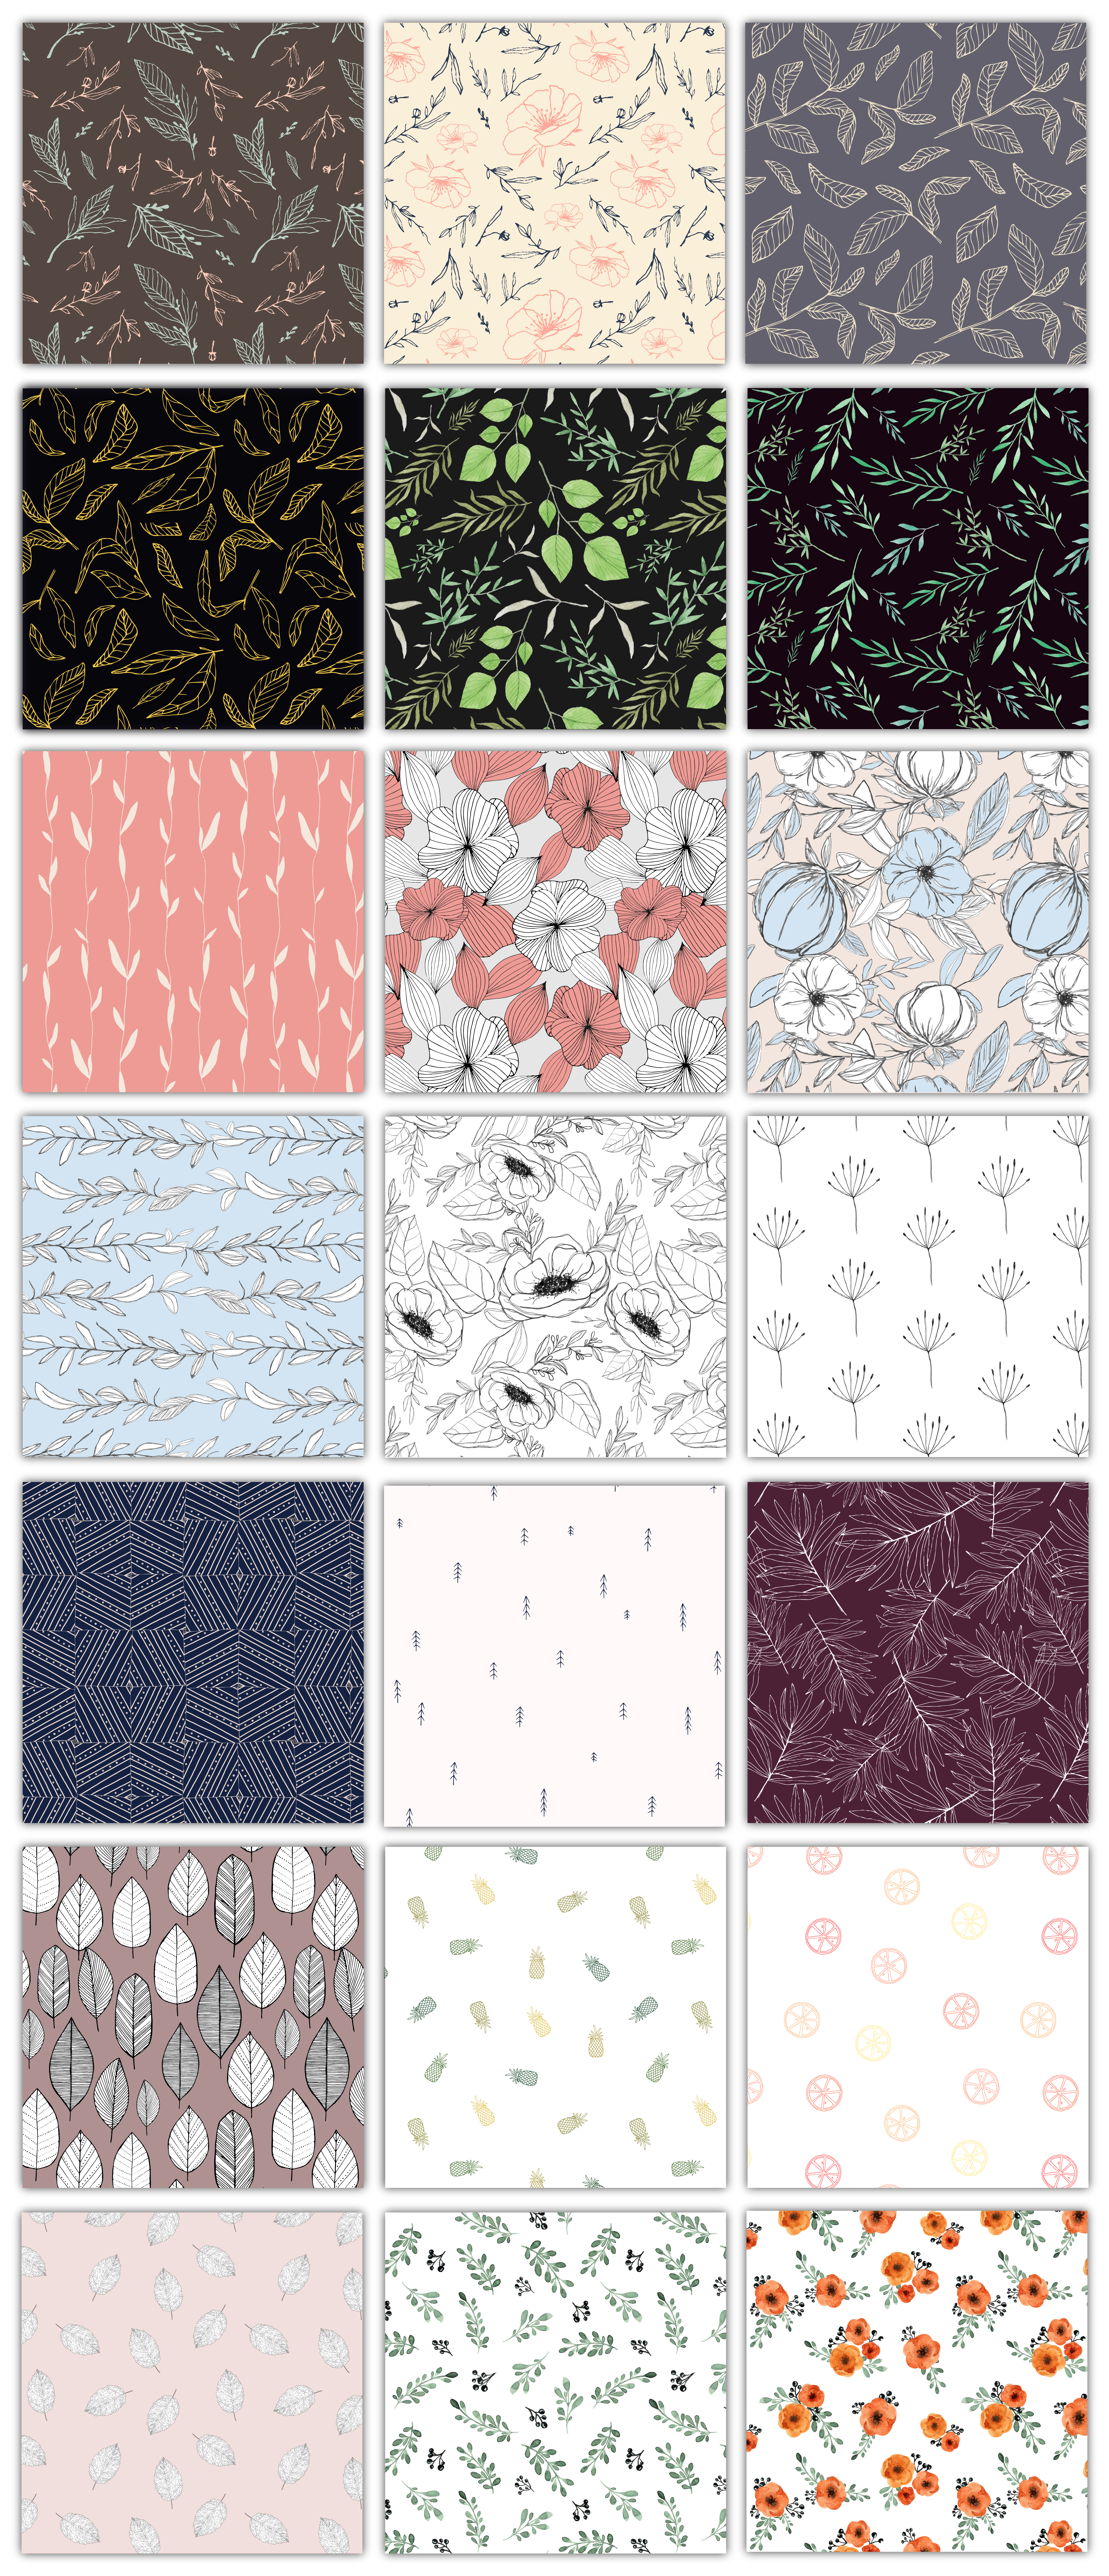 a collection of floral and botanical patterns made for Graphic Pear. All the elements are hand drawn. item